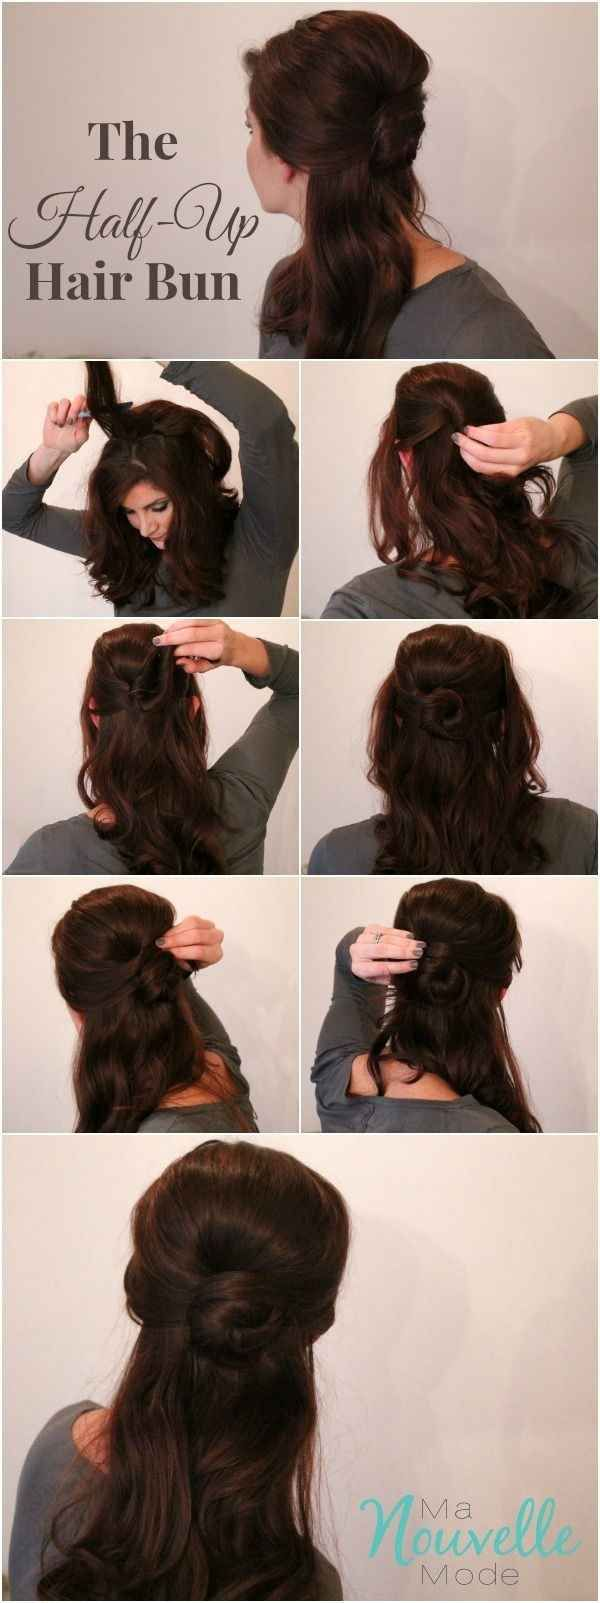 best hair style images on pinterest hairstyle ideas hair